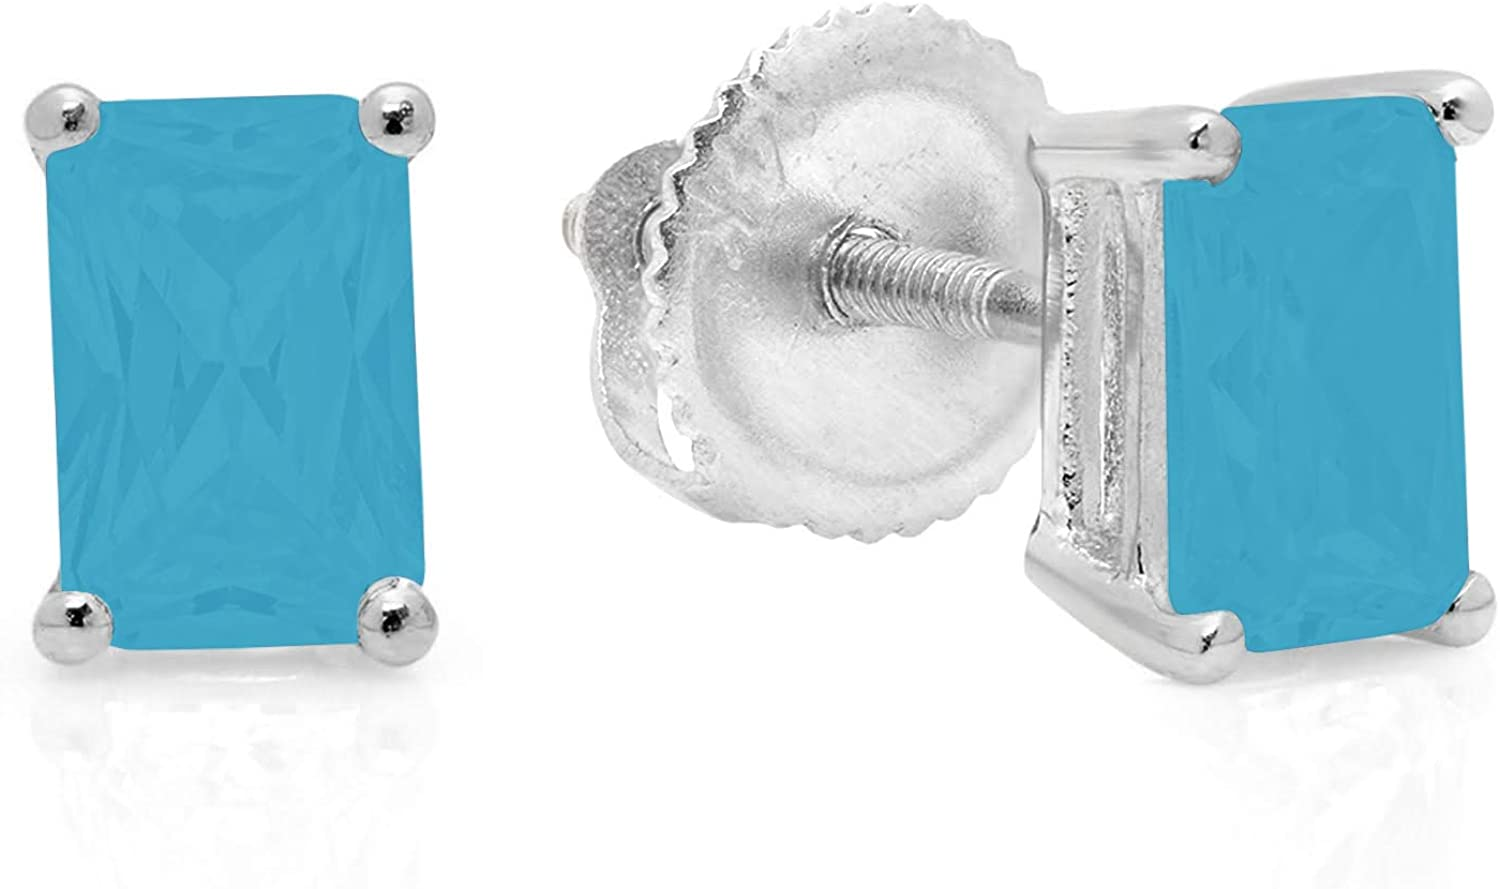 1.0 ct Brilliant Emerald Cut Solitaire Flawless Genuine Simulated CZ Blue Turquoise Gemstone VVS1 Ideal Pair of Designer Stud Earrings Solid 14k White Gold Screw Back